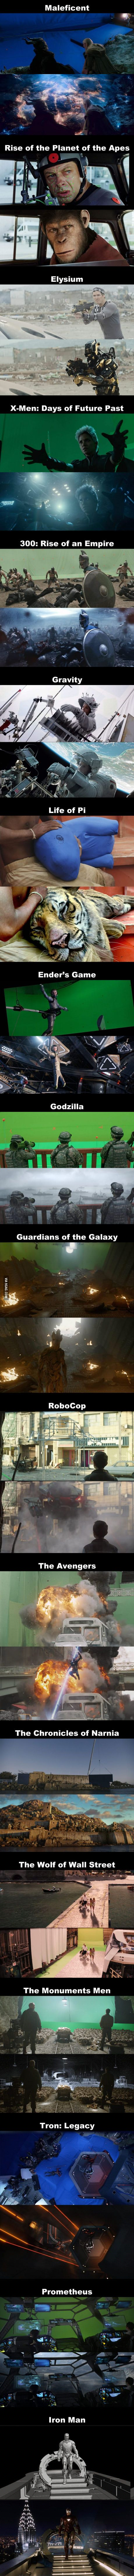 Before And After Special Effects Of 18 Well-known Movies